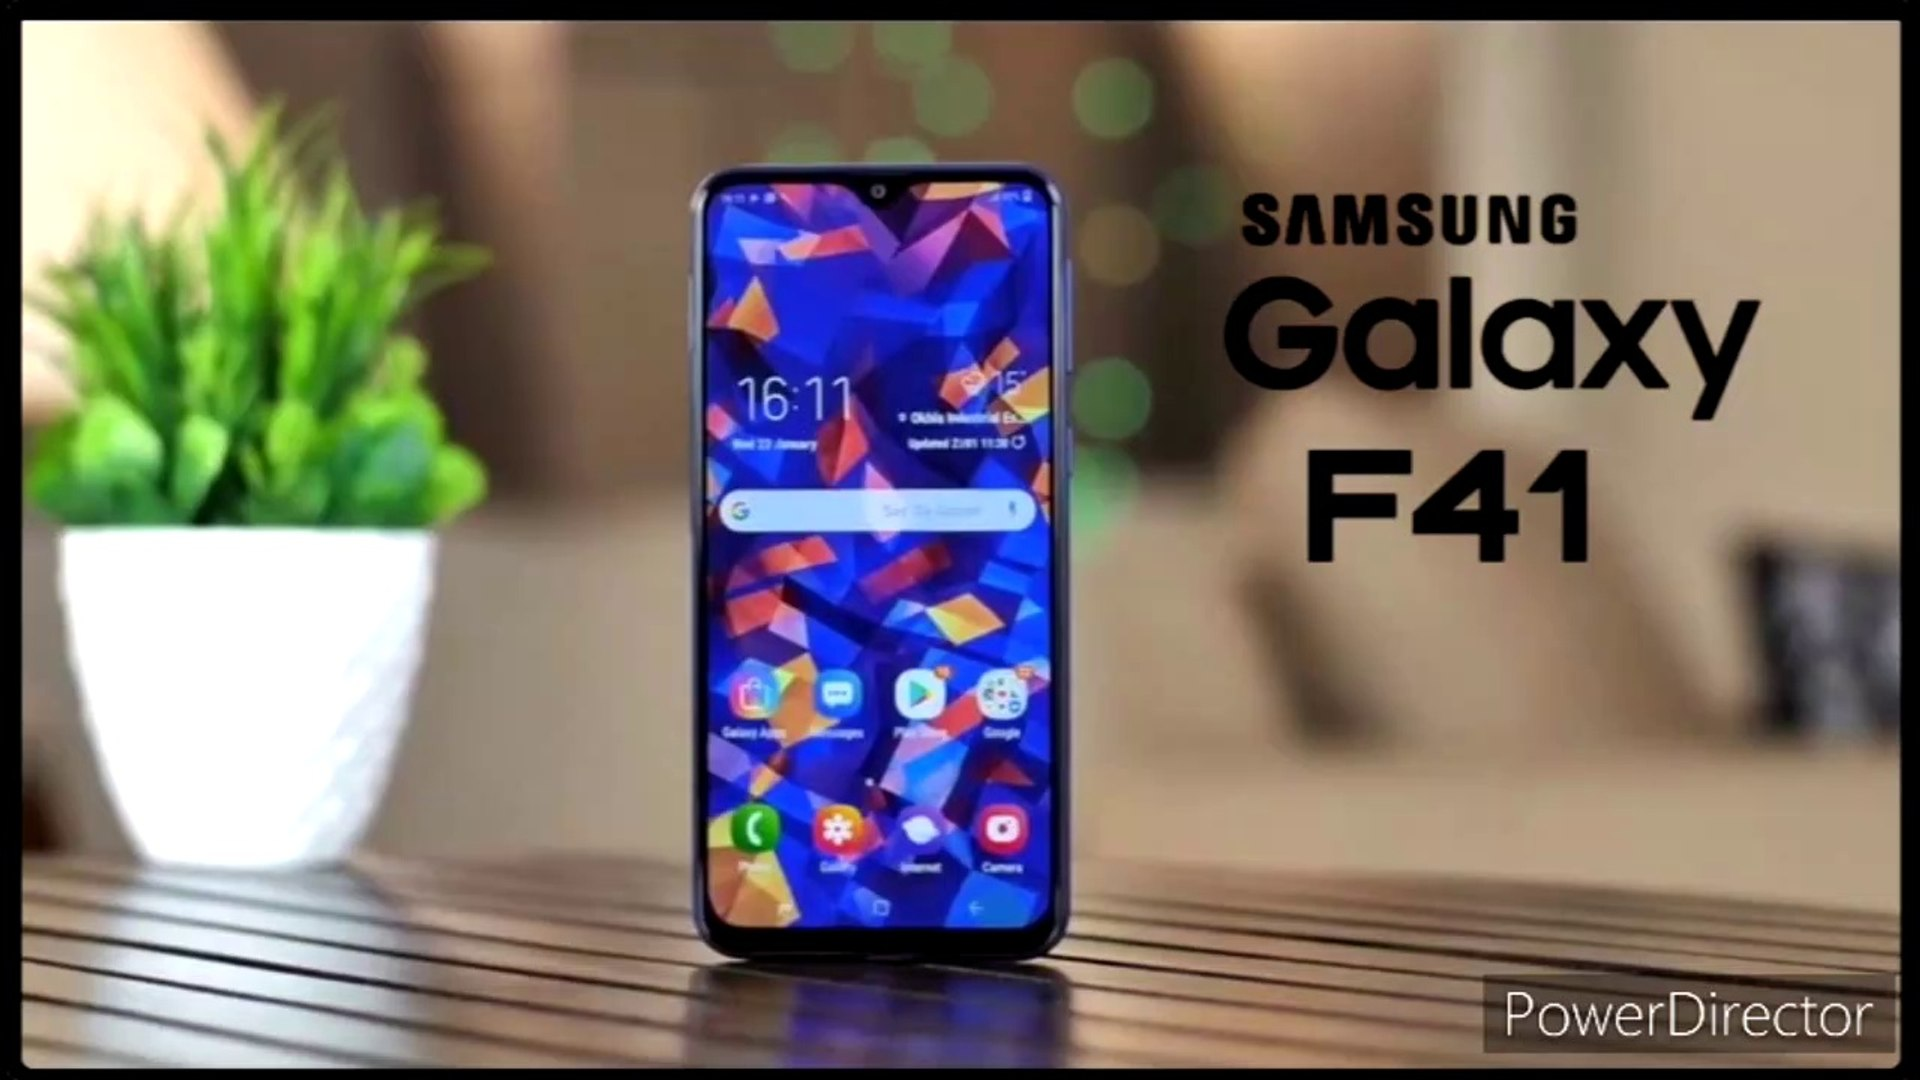 Samsung Galaxy F41 Key Specifications Revealed Video Dailymotion